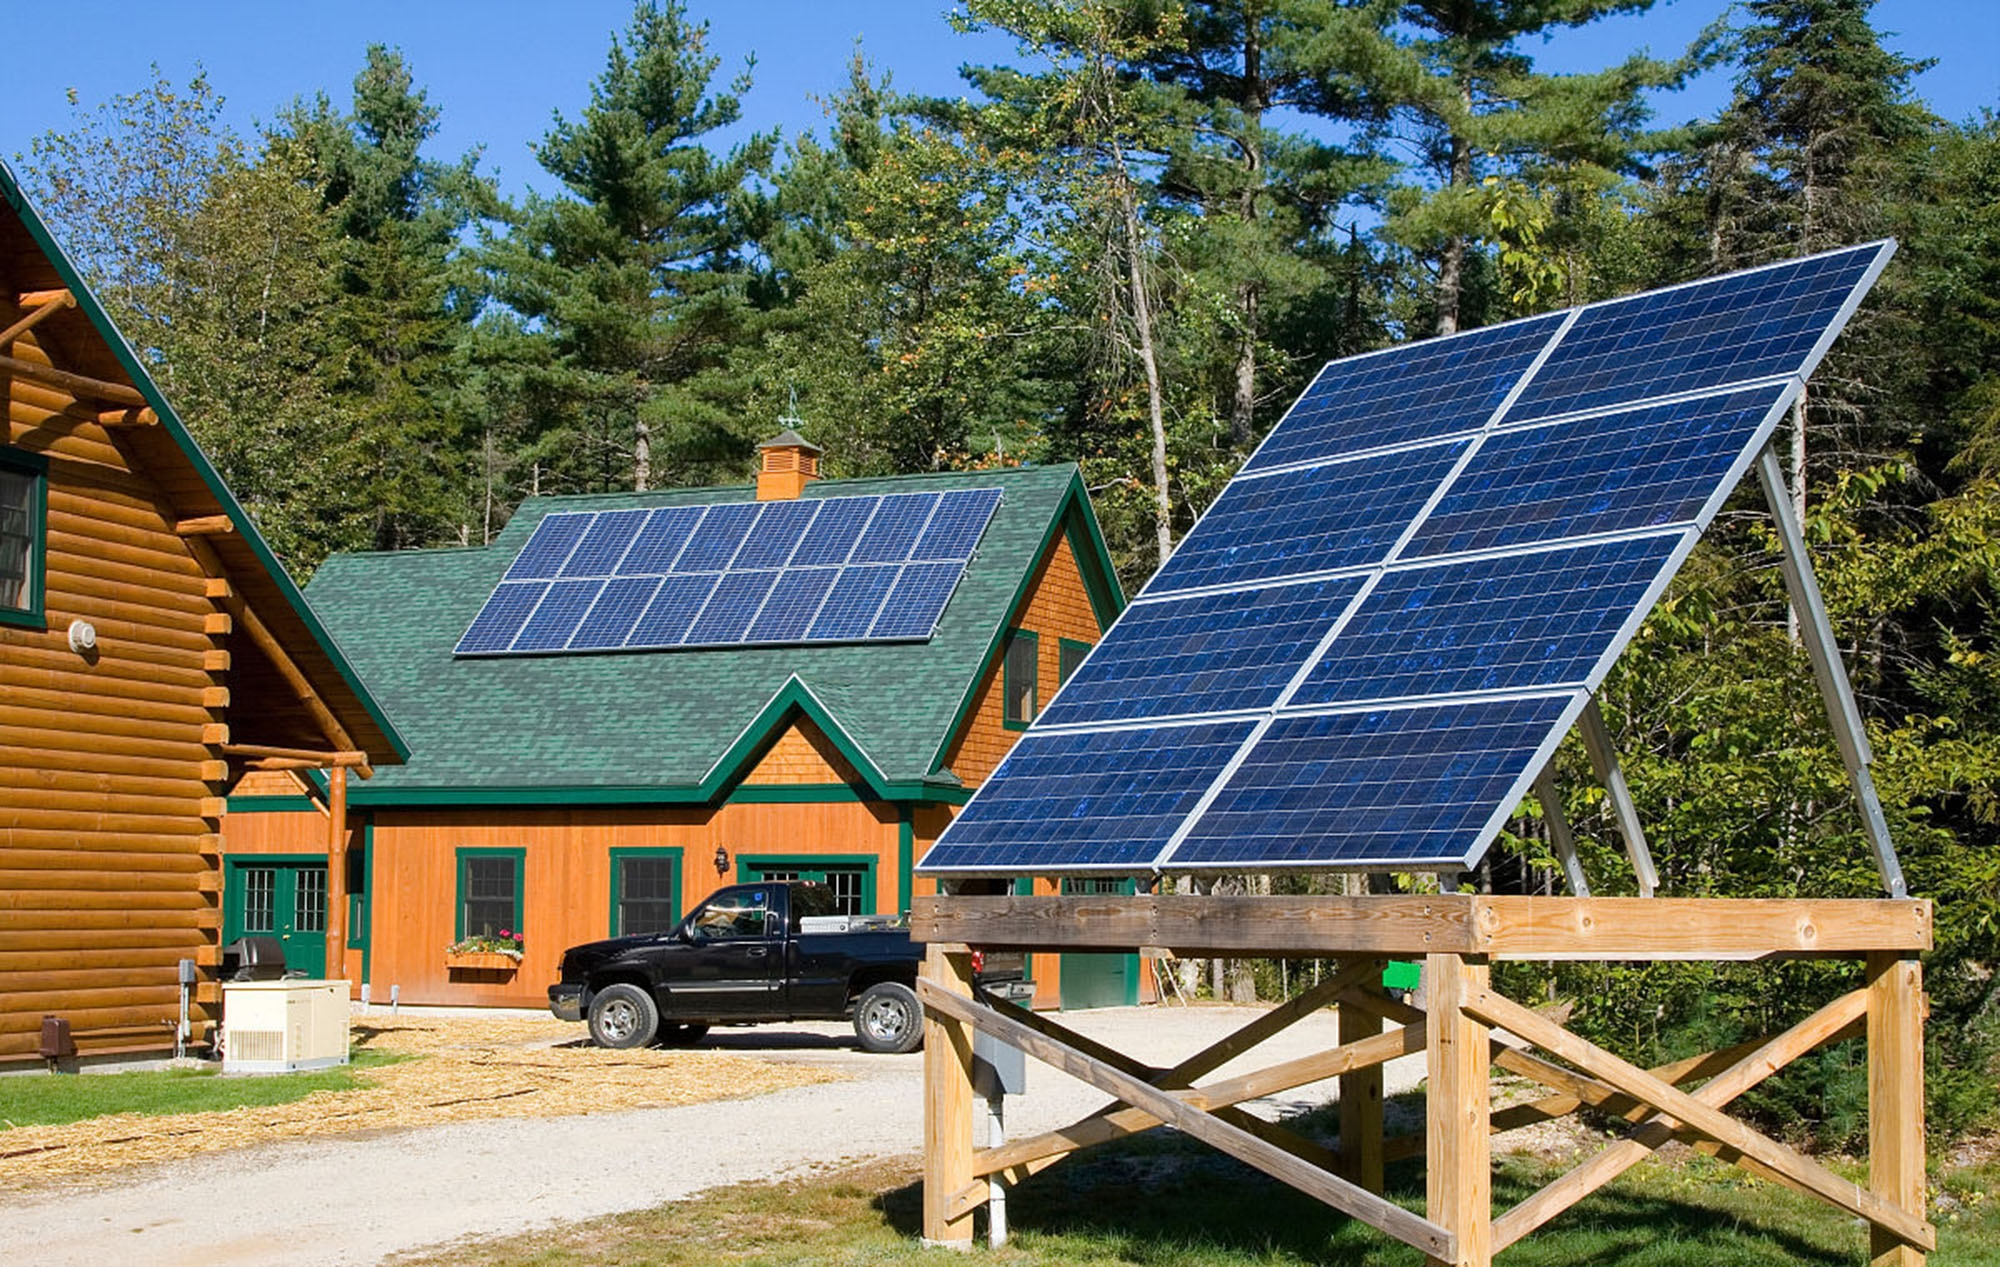 WHAT DOES IT COST TO GO SOLAR?